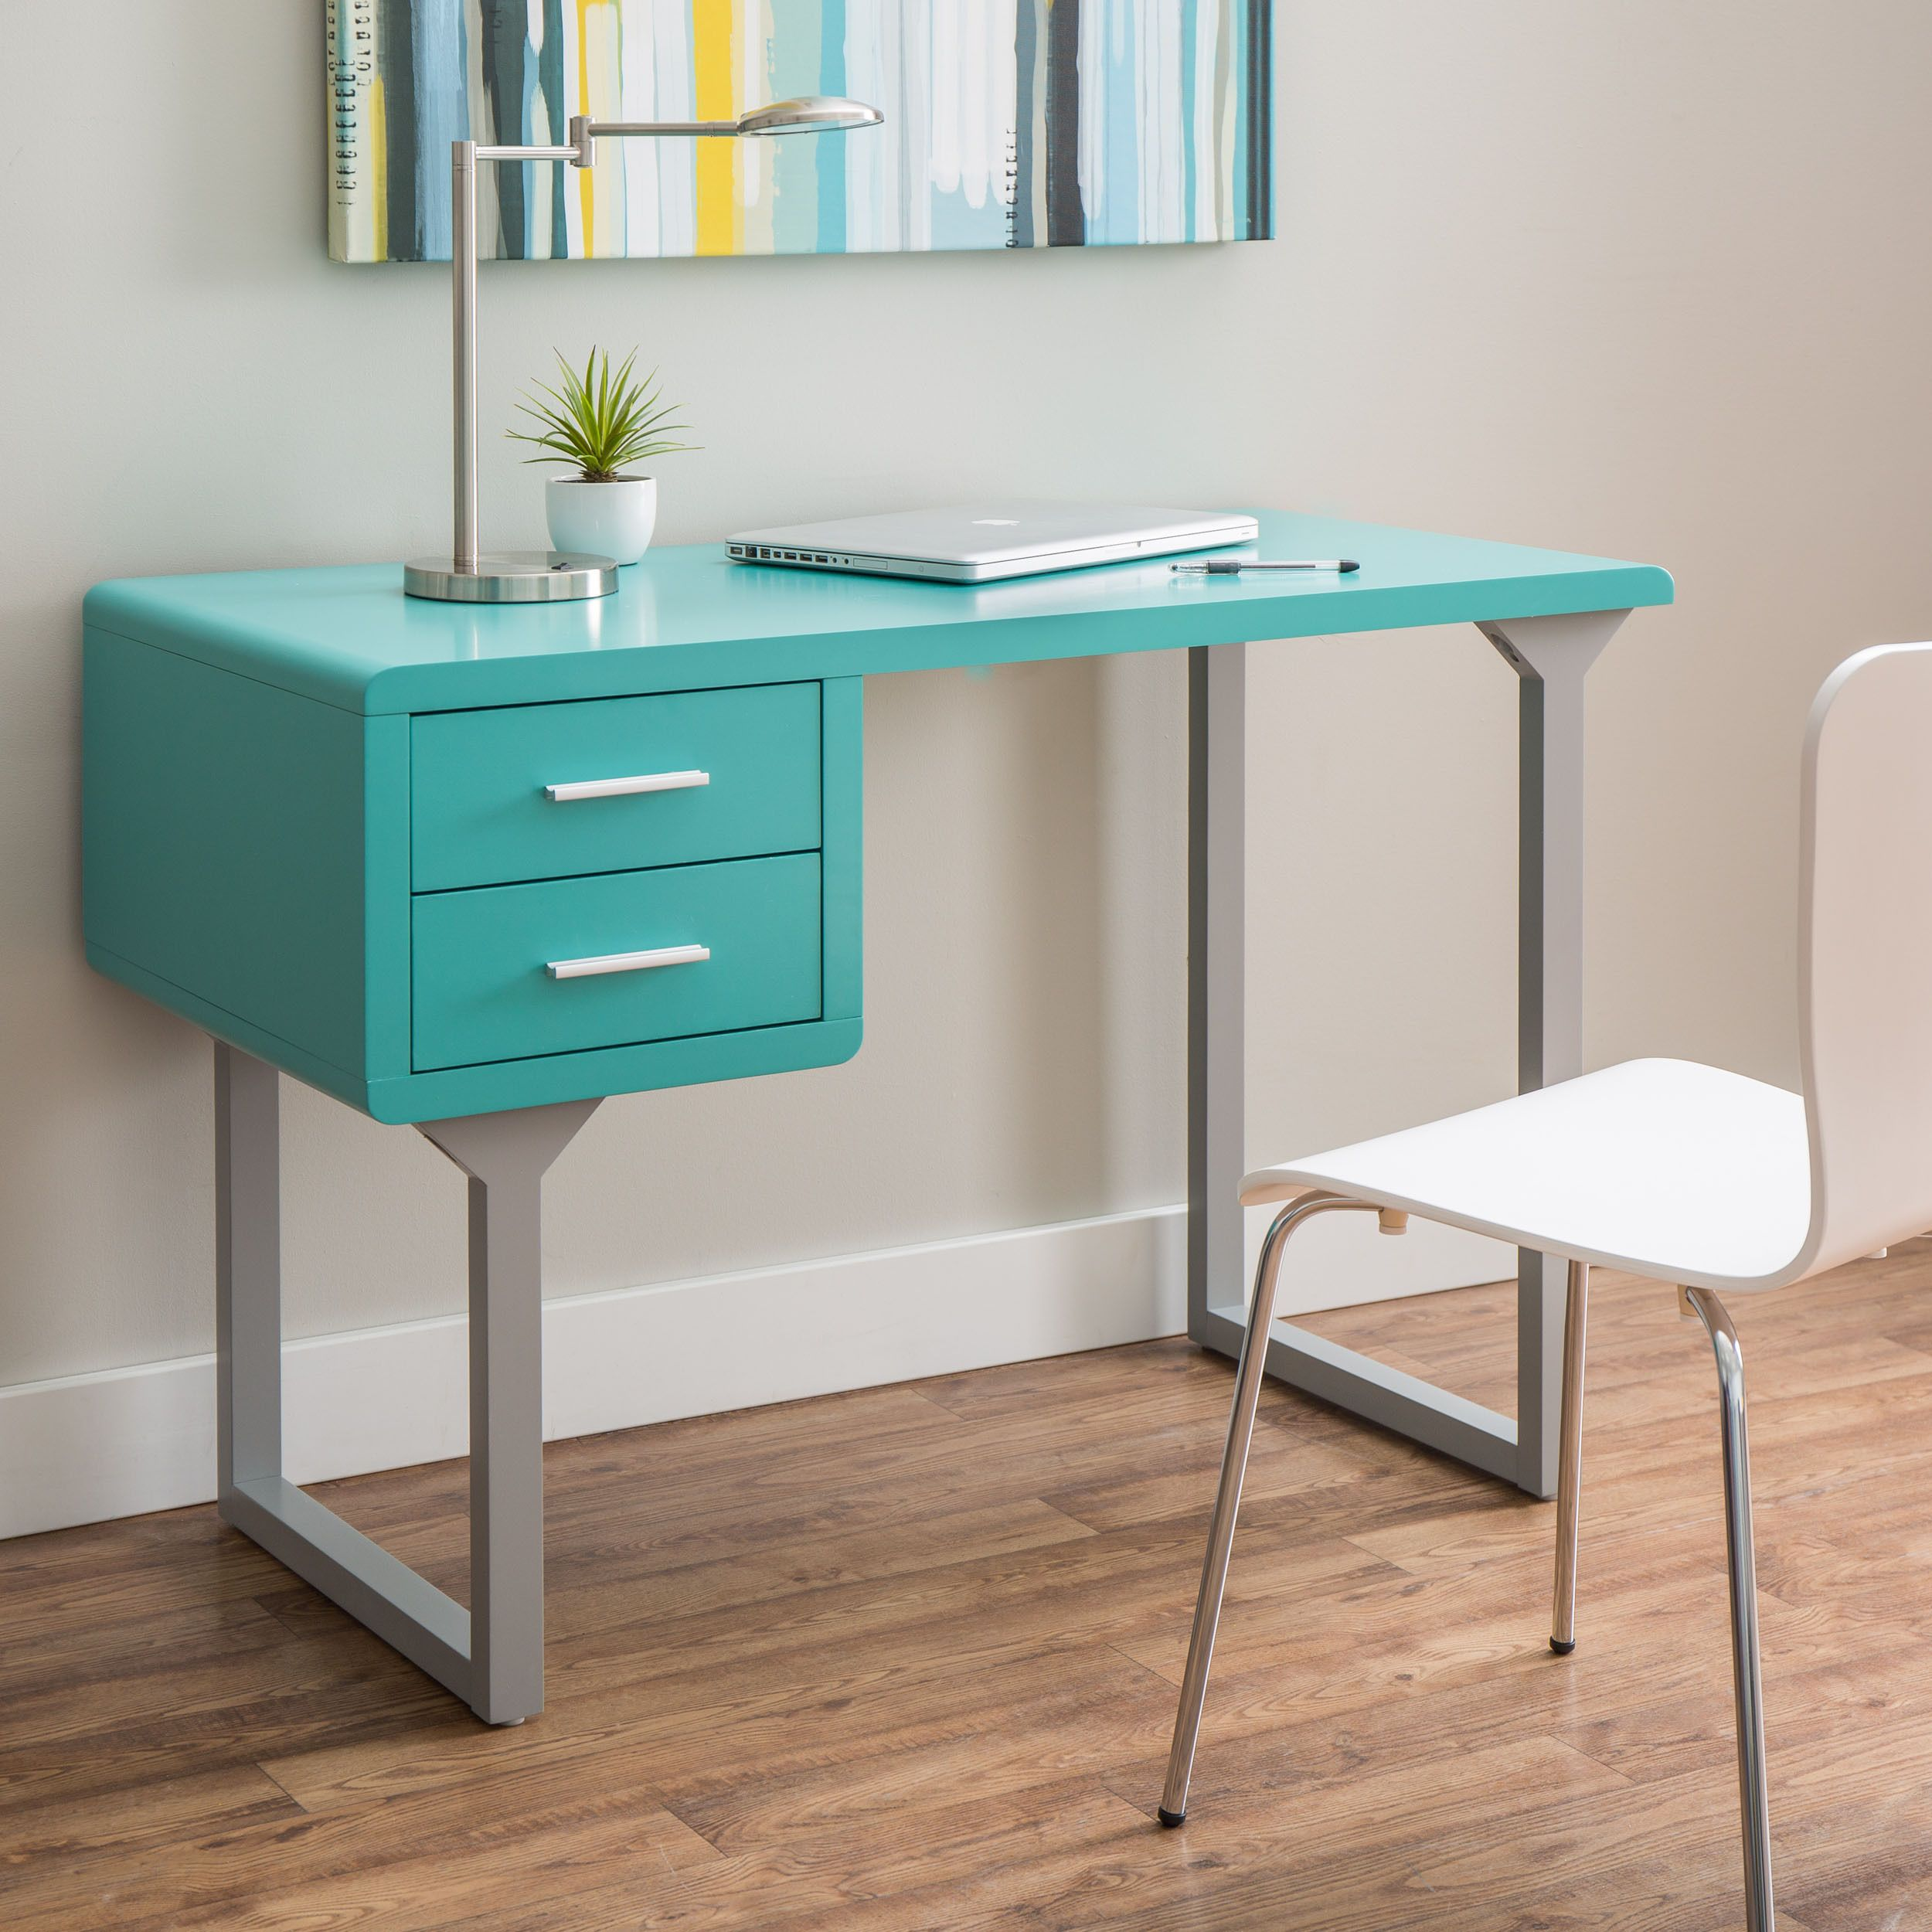 Turquoise Desk Chair Retro Turquoise And Grey Writing Desk By I Love Living